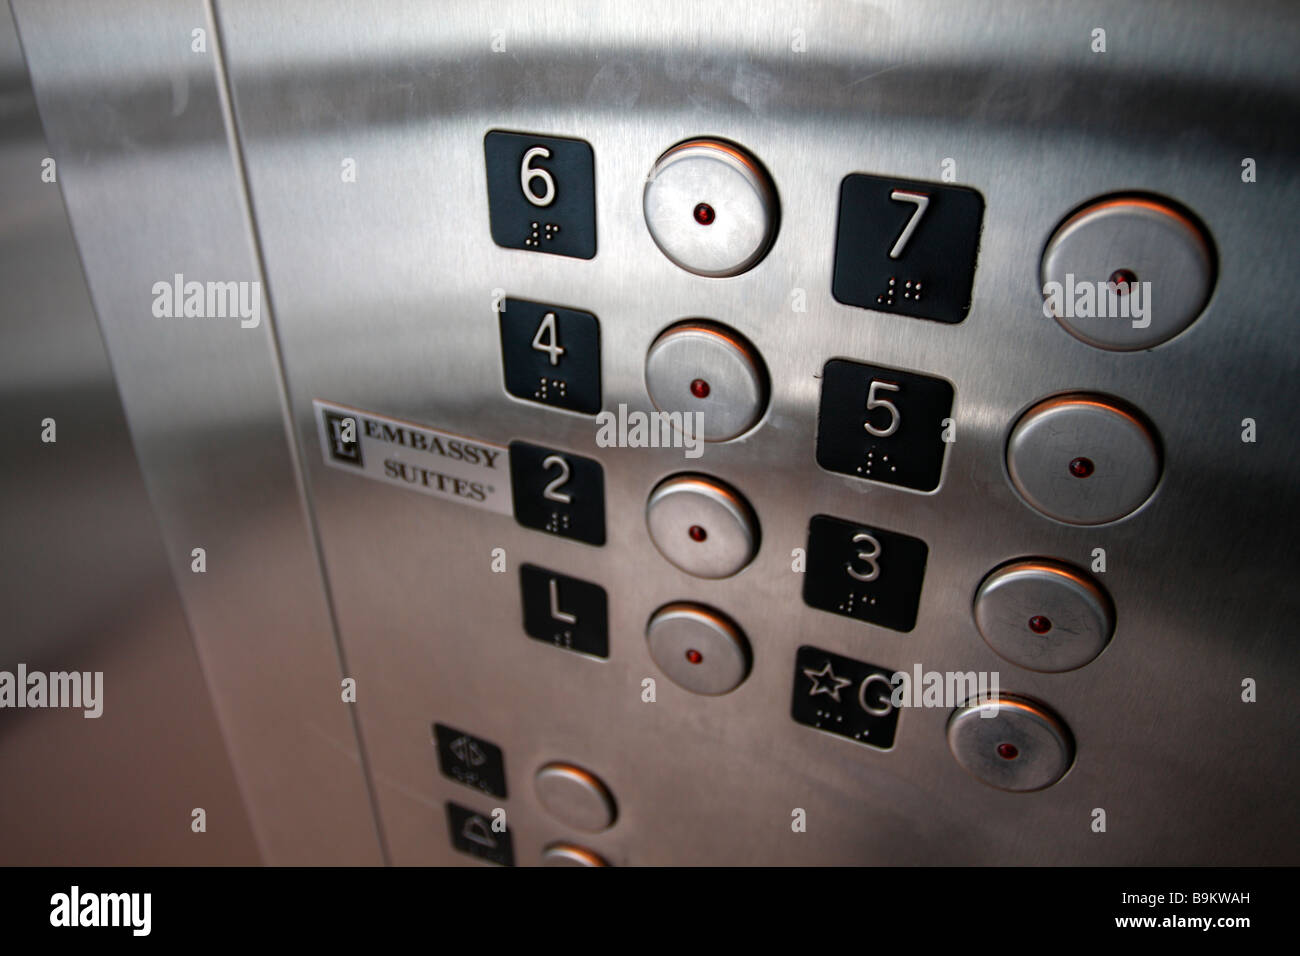 Elevator buttons panel stainless steel Embassy Suites logo - Stock Image